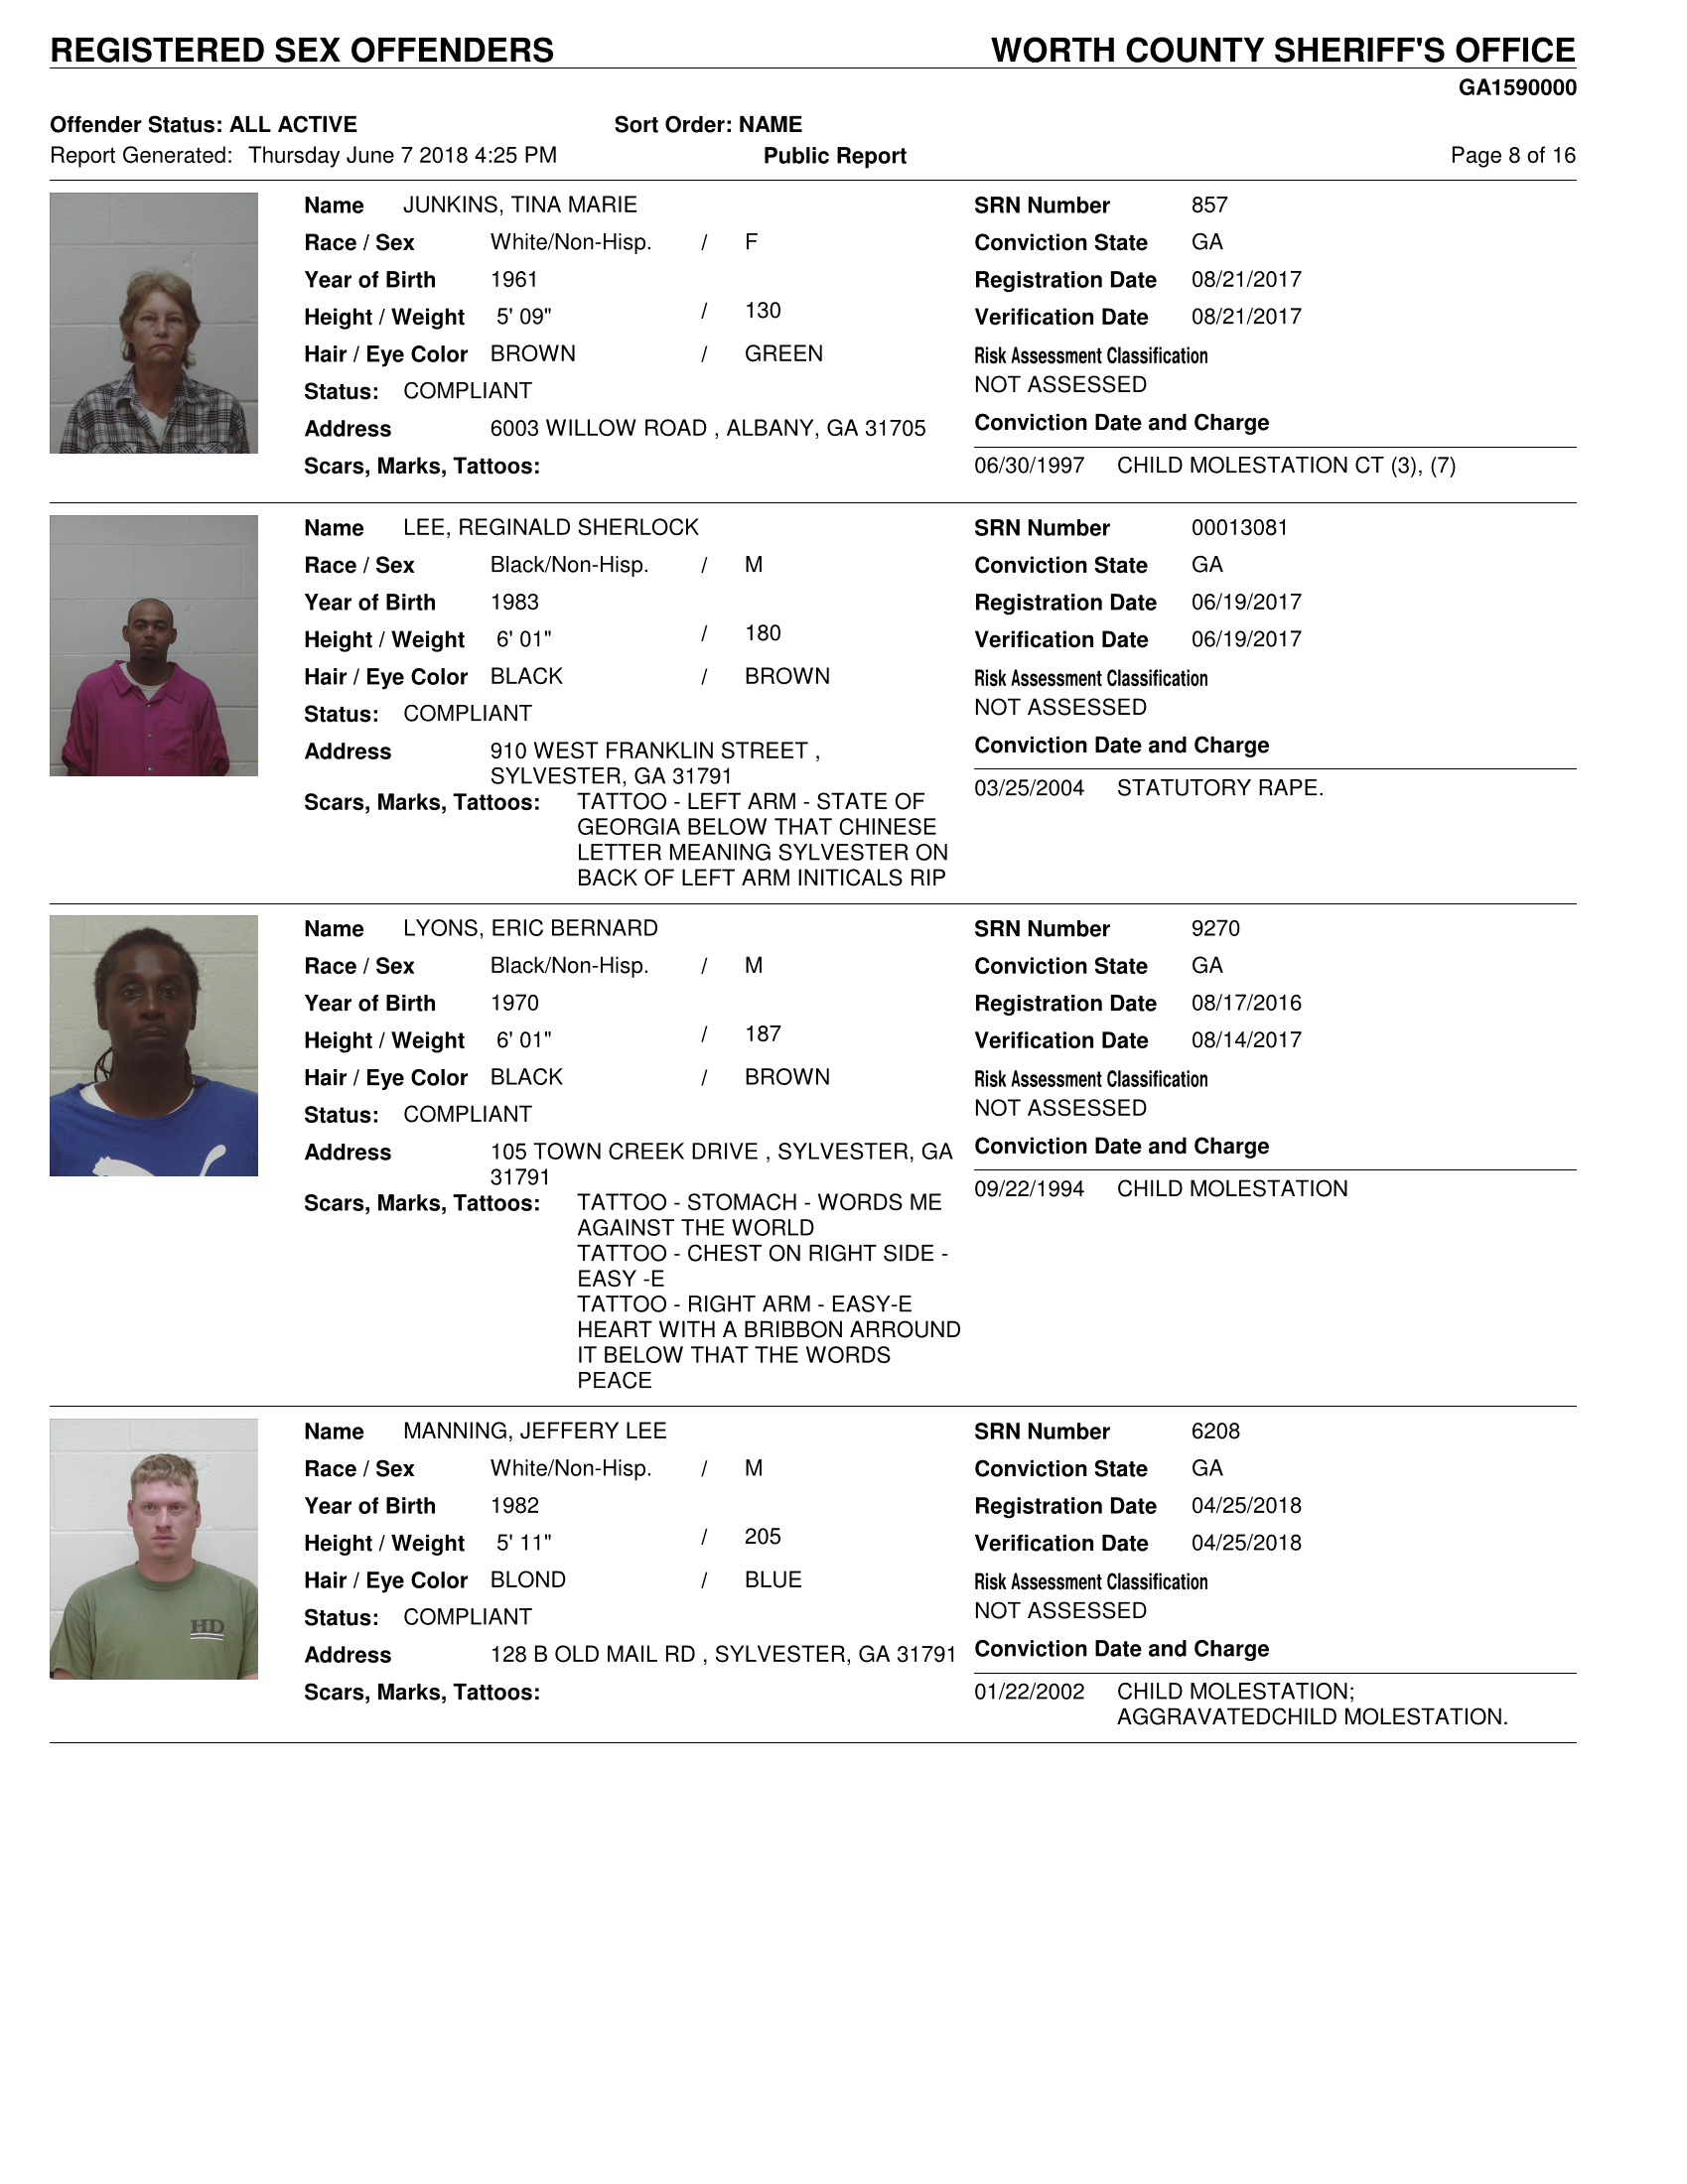 webster county sex offender list